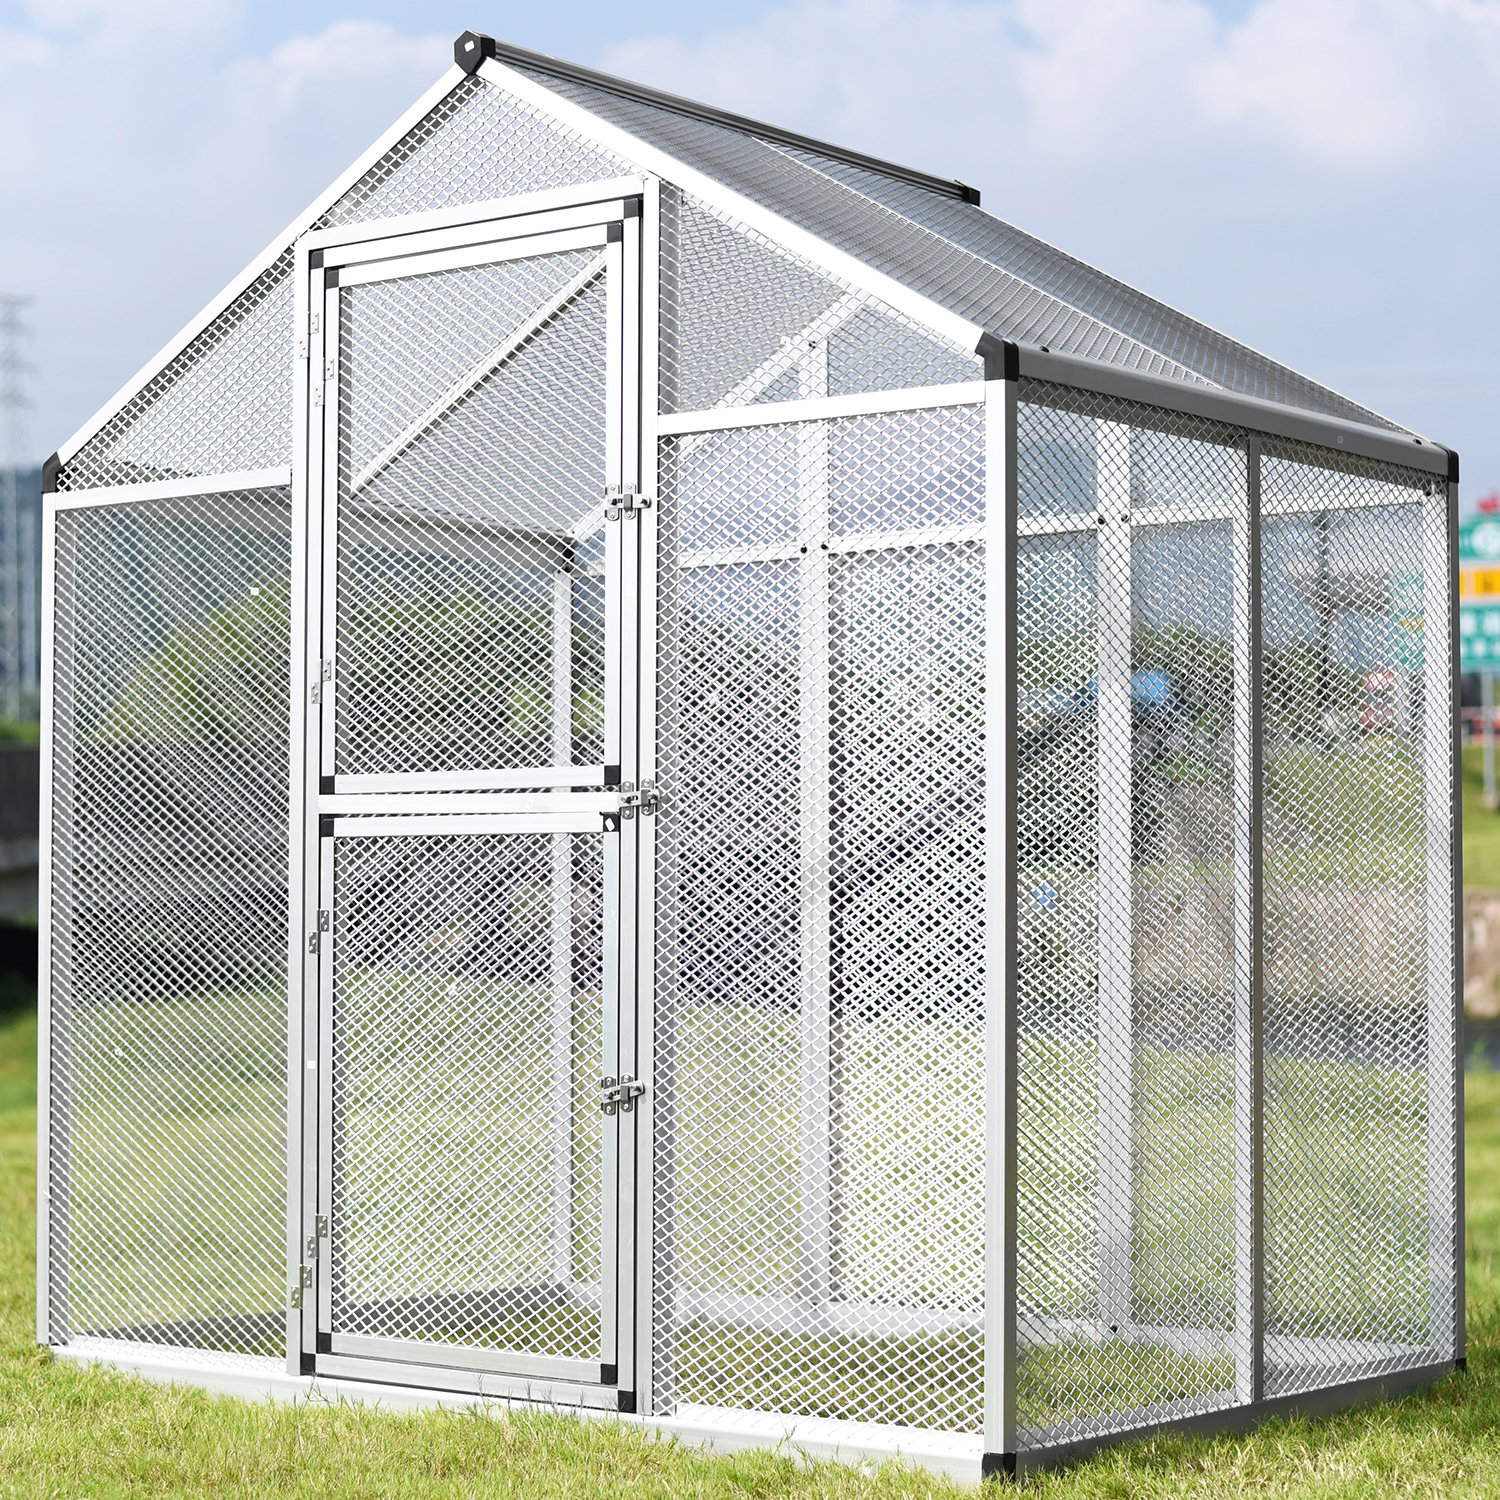 Amazon.com : WALCUT Aluminum Heay Duty Large Bird Cage Aviary Bird ...